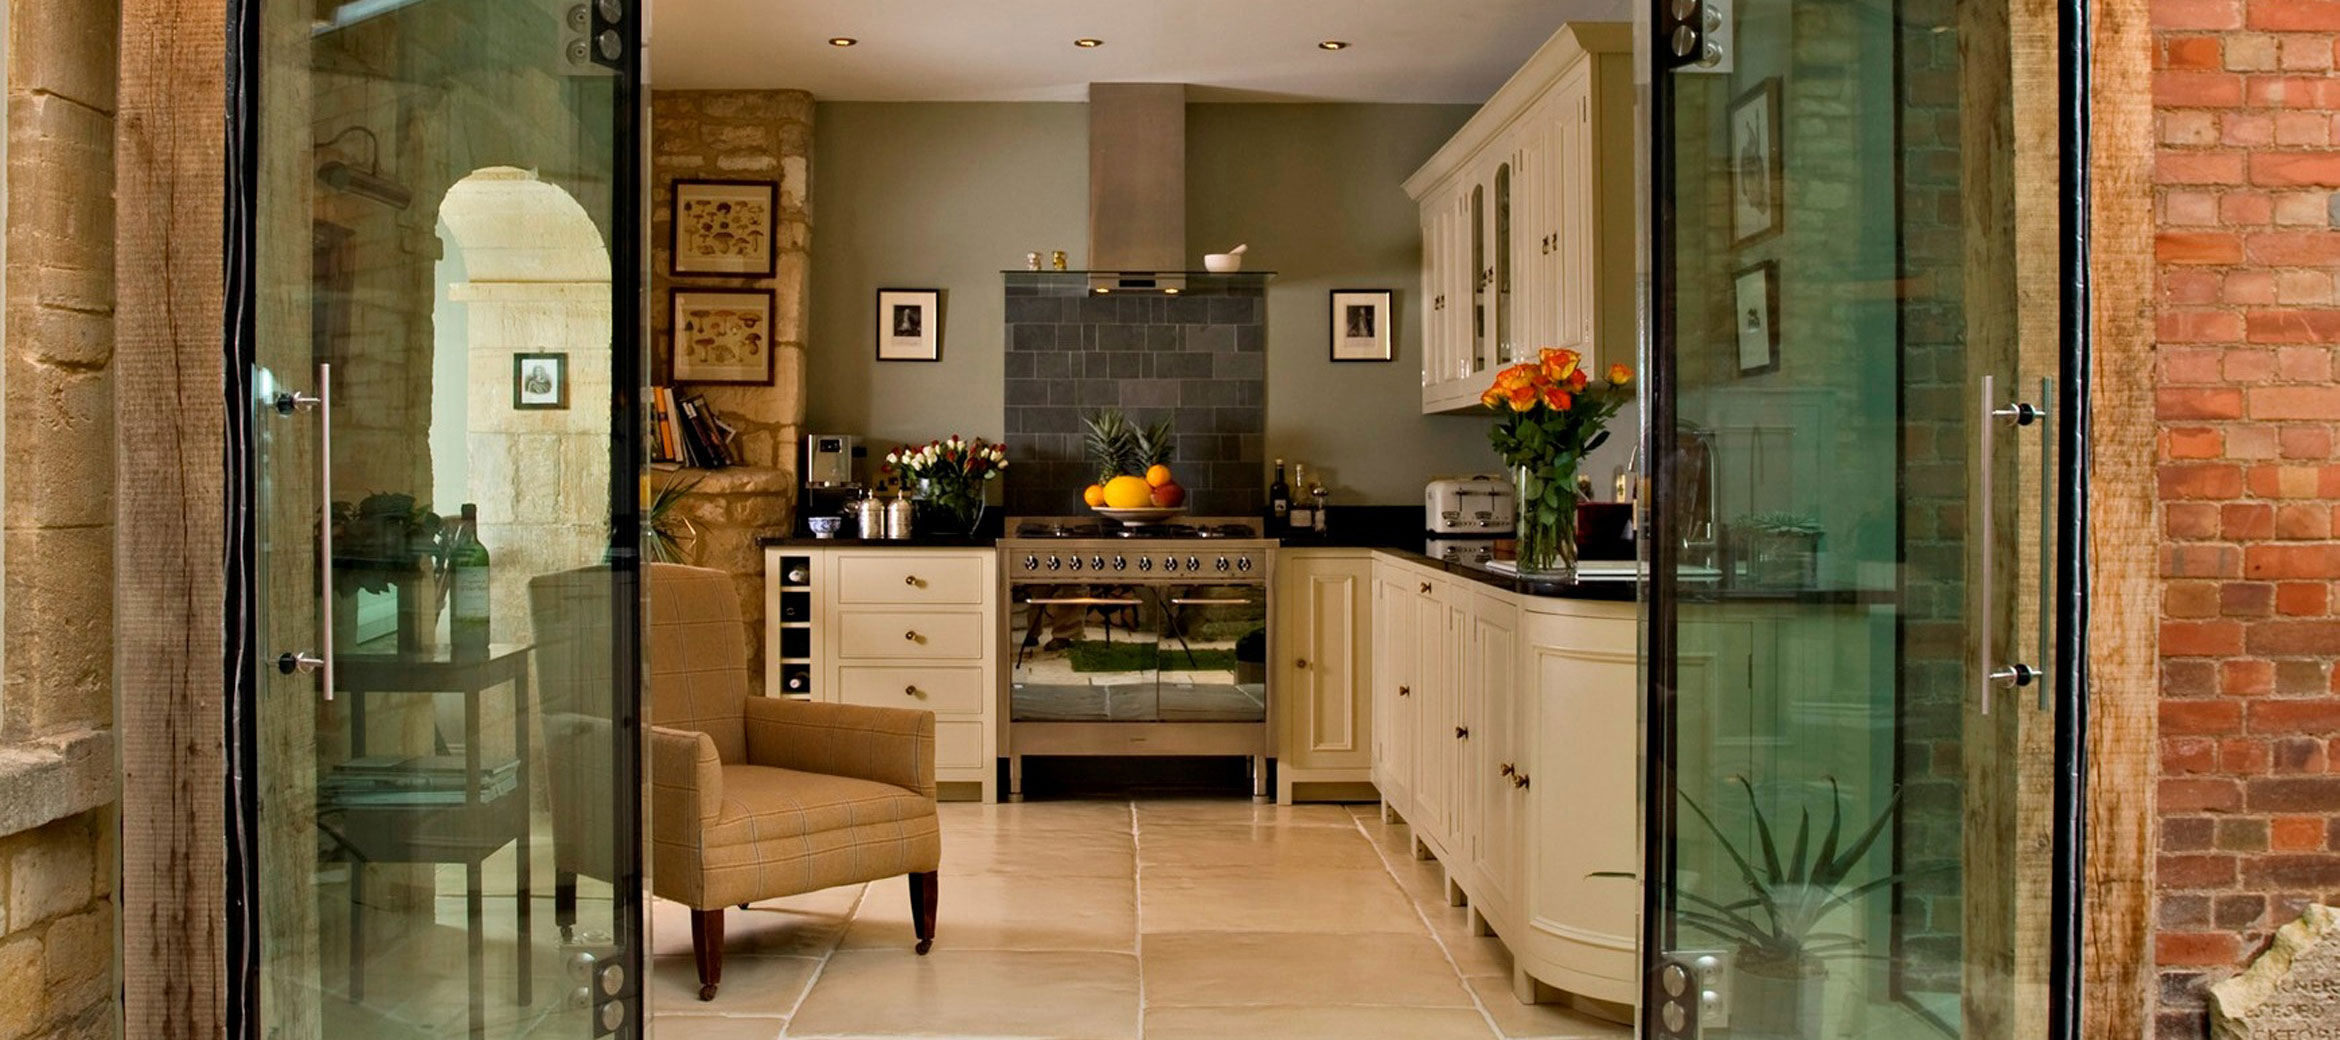 singer-house-chipping-campden-kitchen